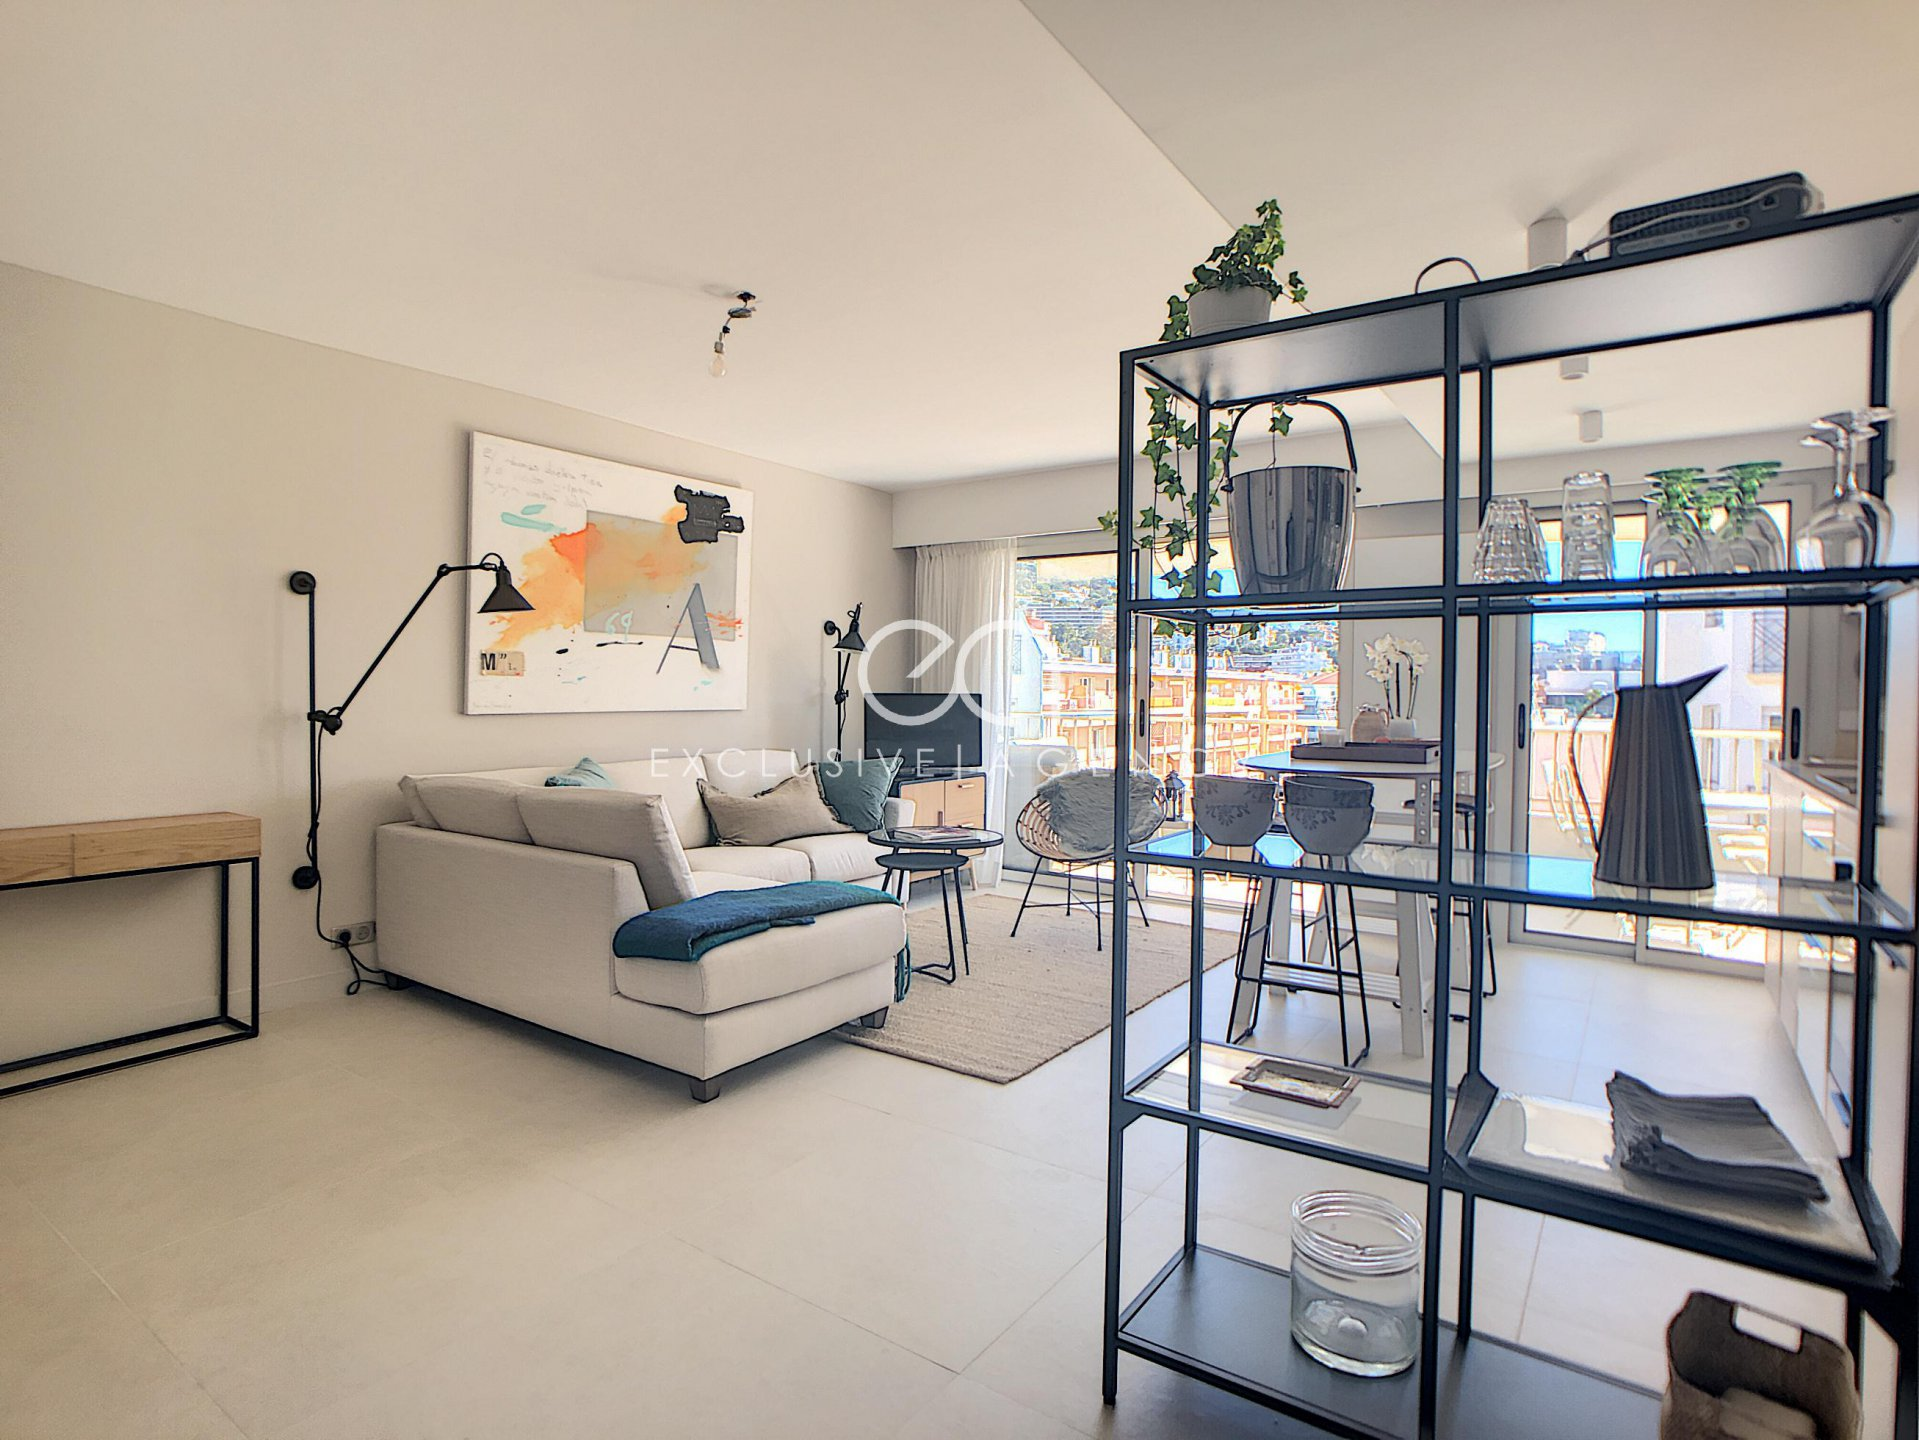 Cannes Banane - entirely renovated 1 bedroom apartment of 48 sqm, terrace with lateral sea view - garage and cellar